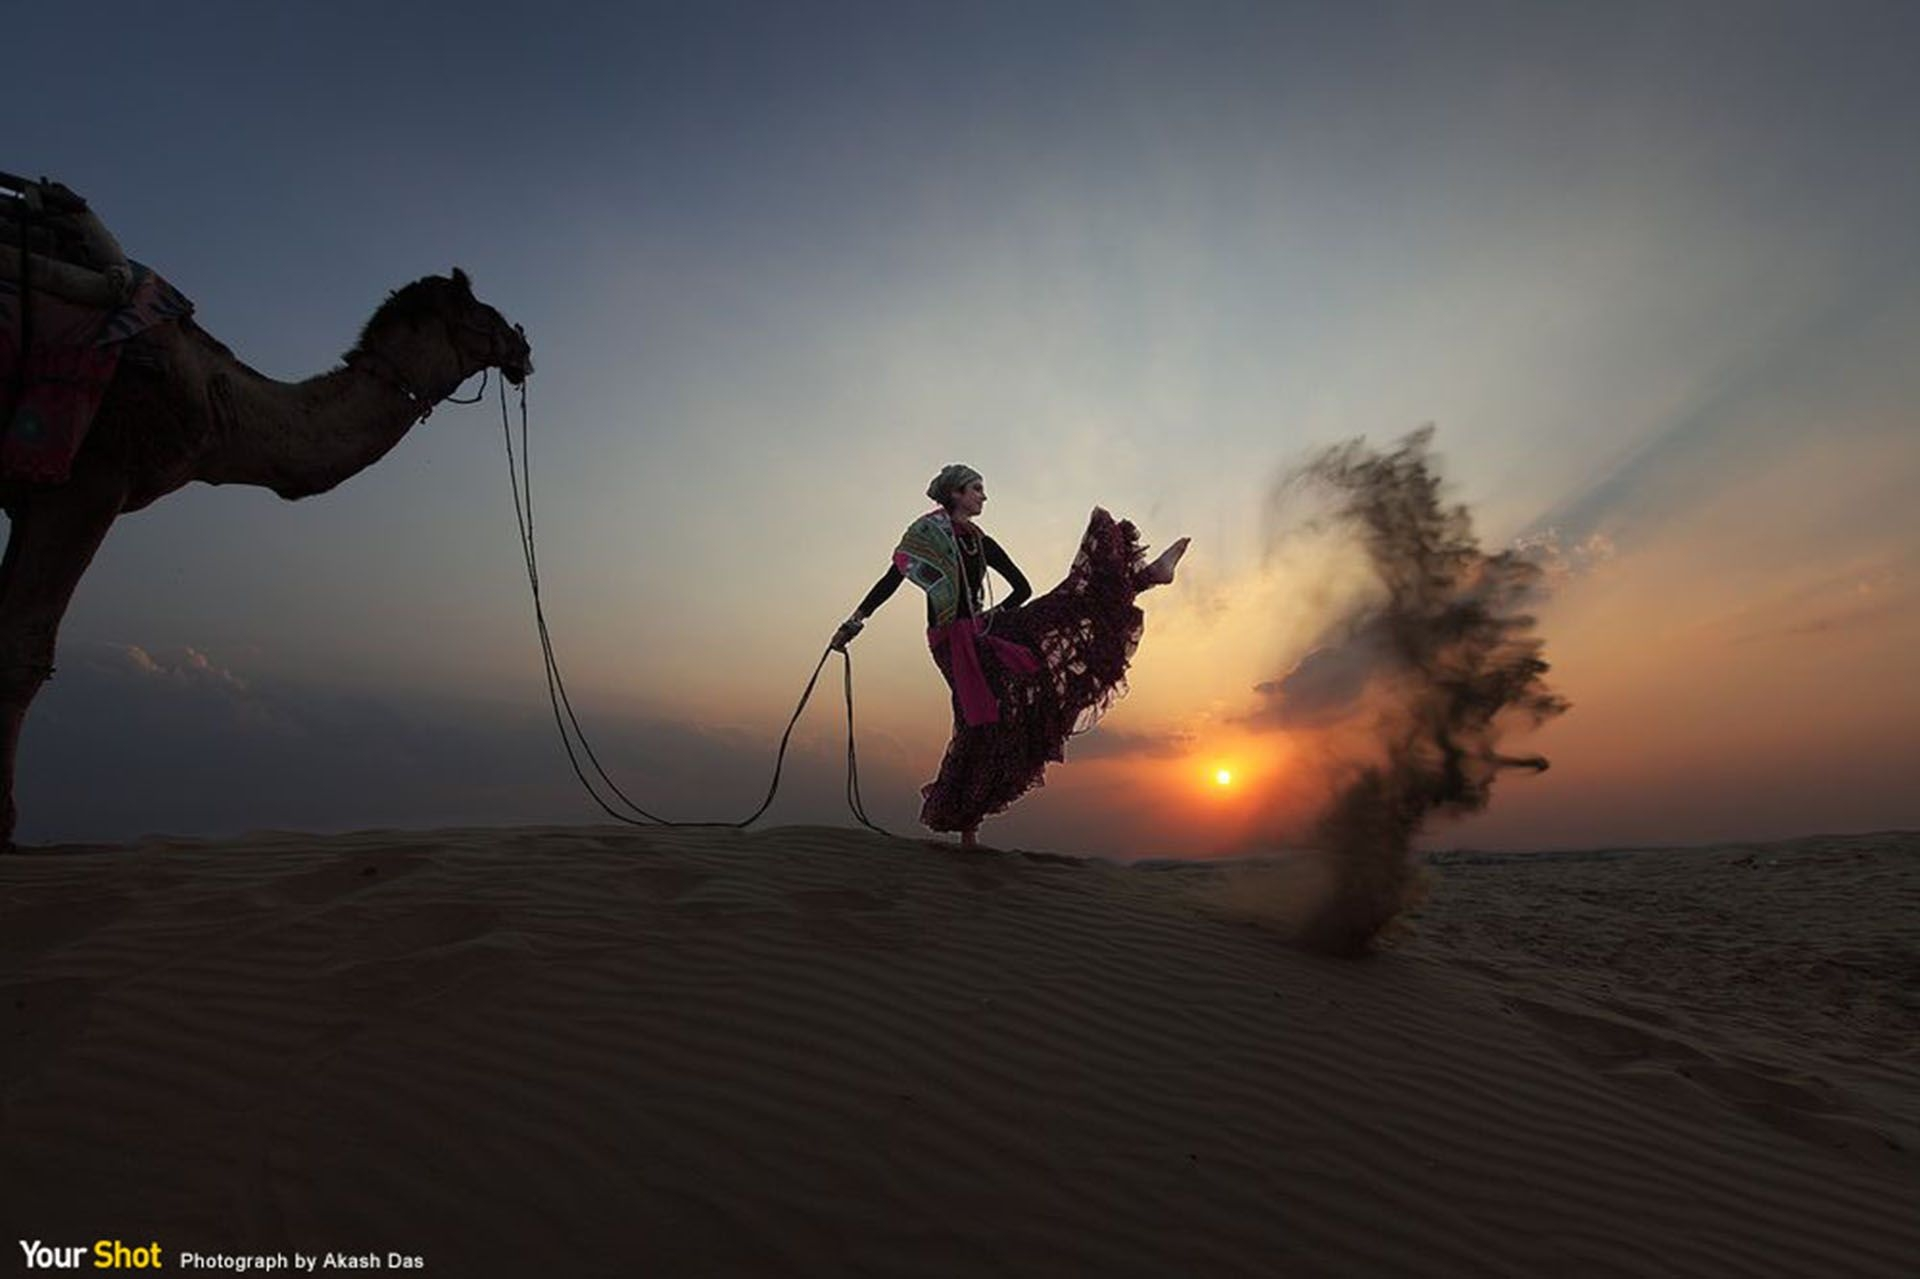 Photograph by Akash Das, National Geographic